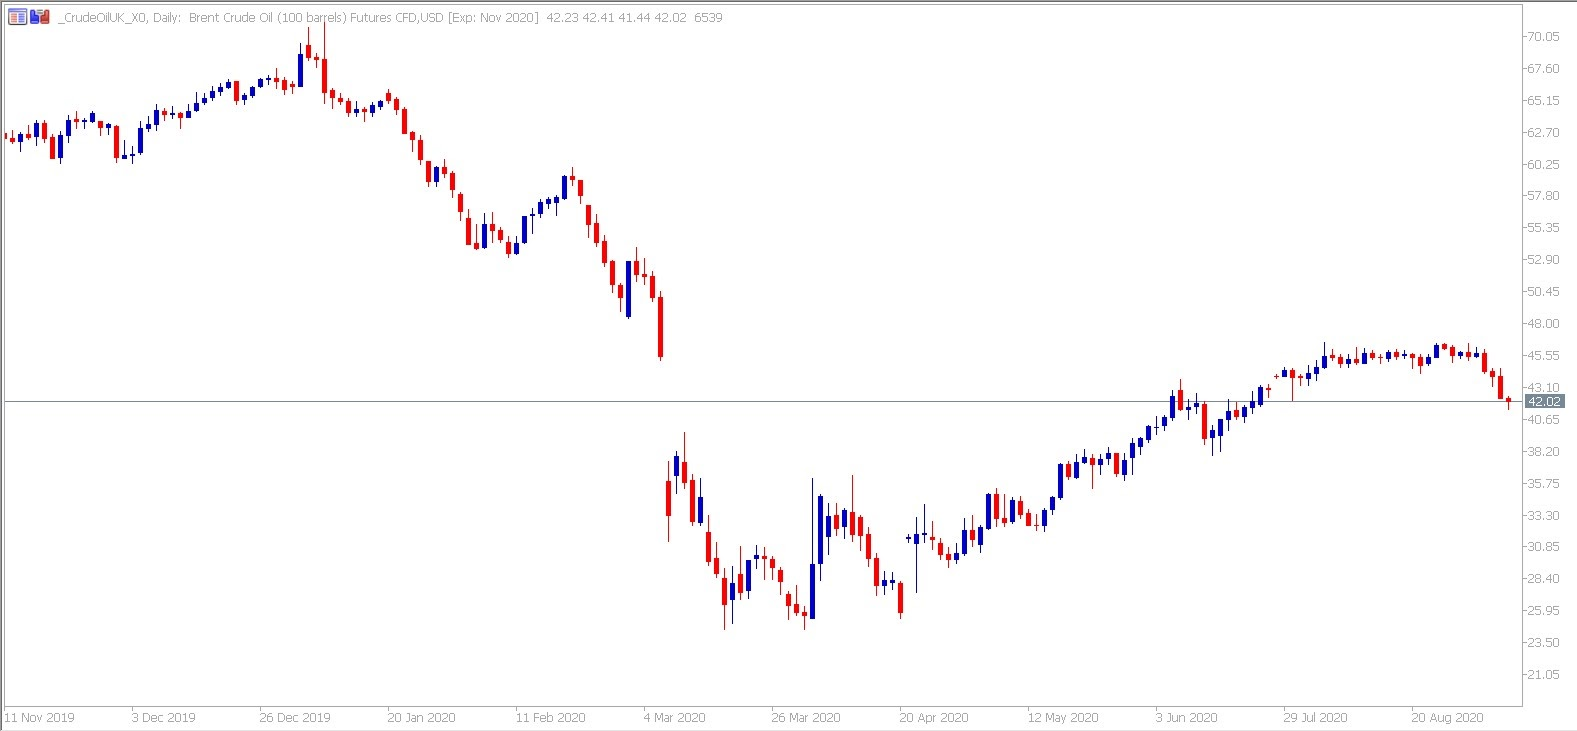 Brent daily chart